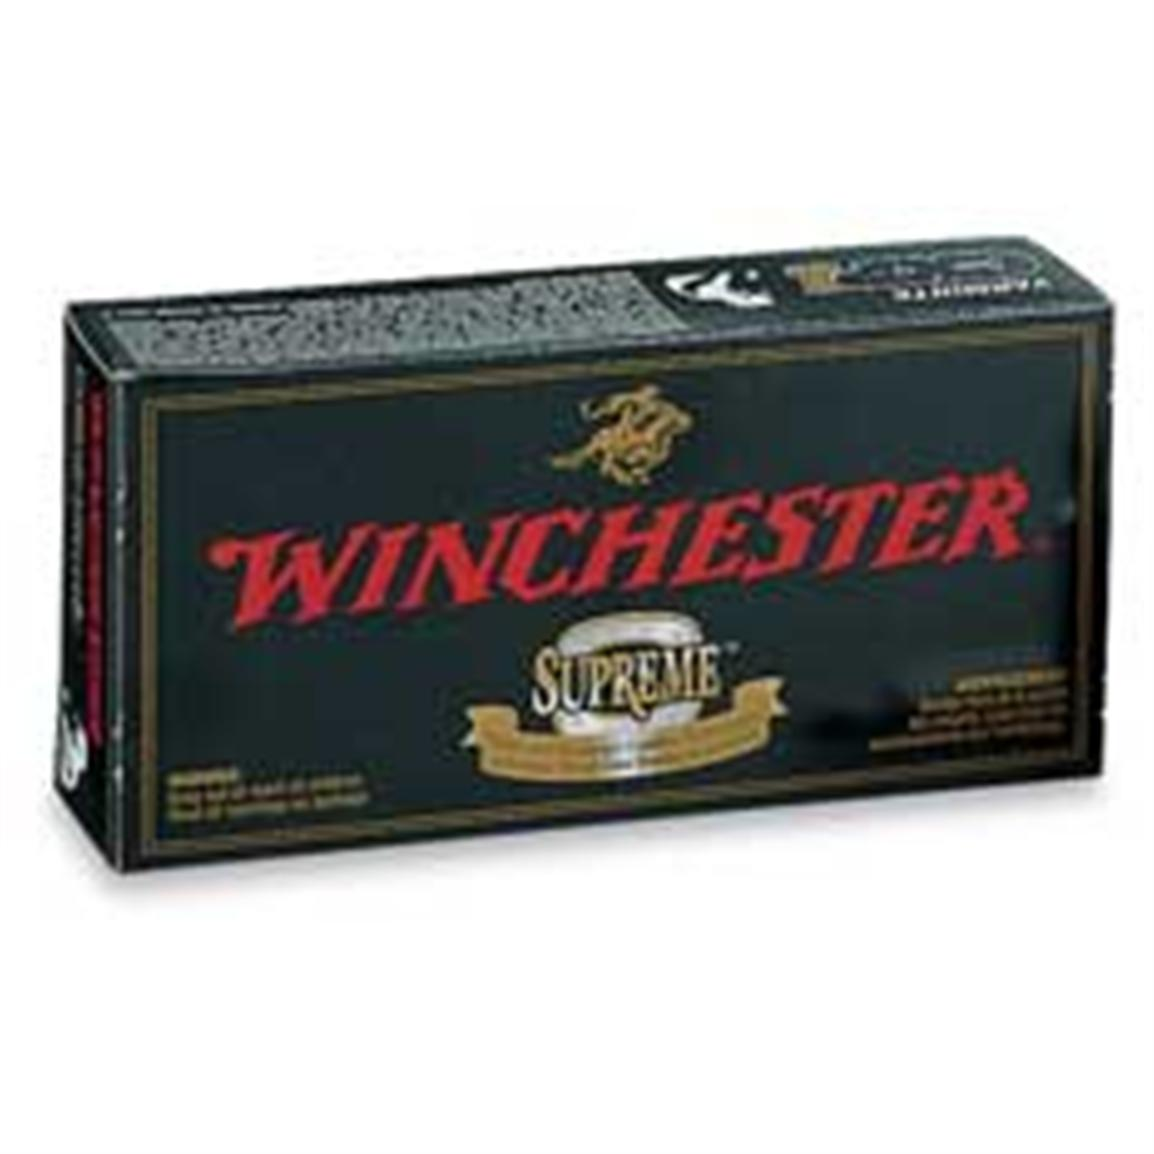 Winchester Supreme Ballistic Silvertip Rifle Cartridges